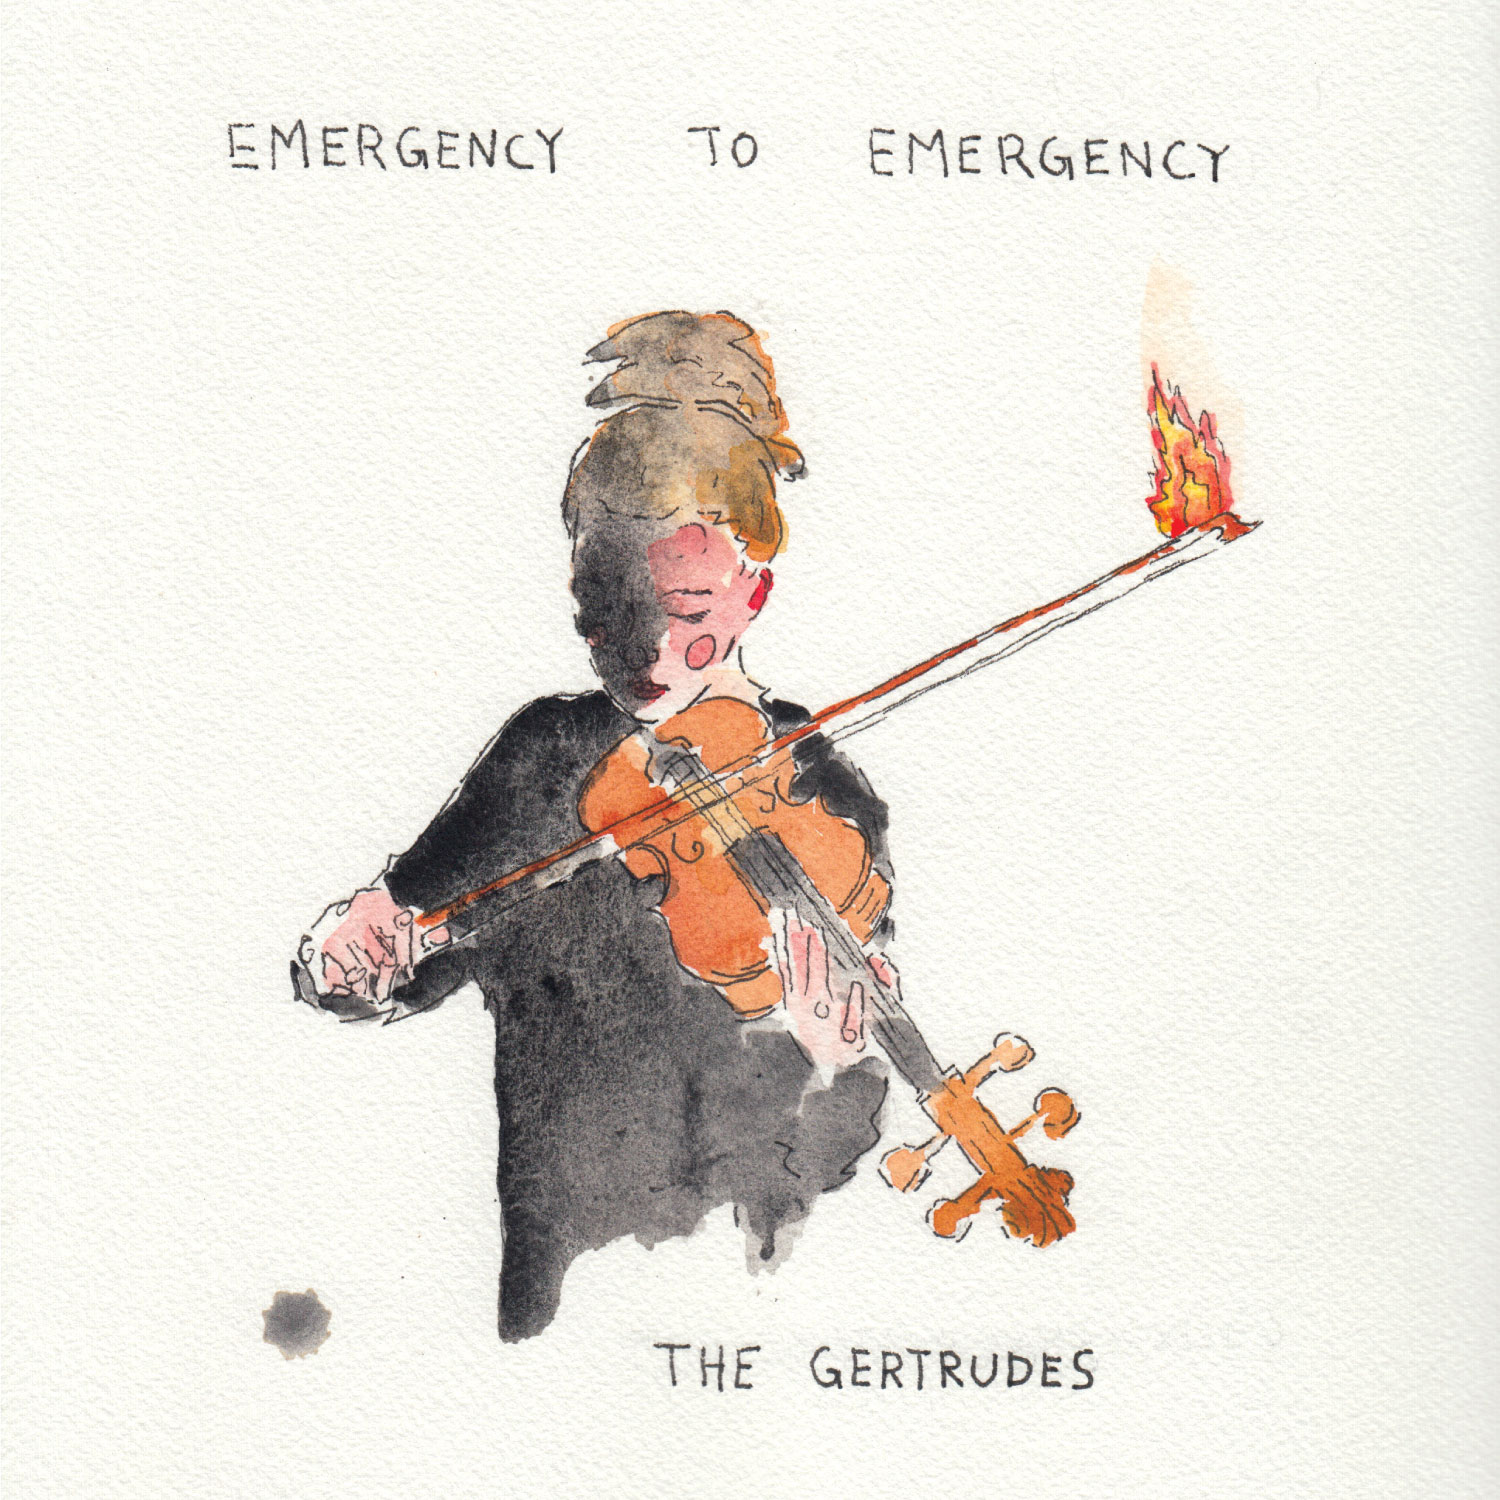 The Gertrudes - Emergency to Emergency - Album cover